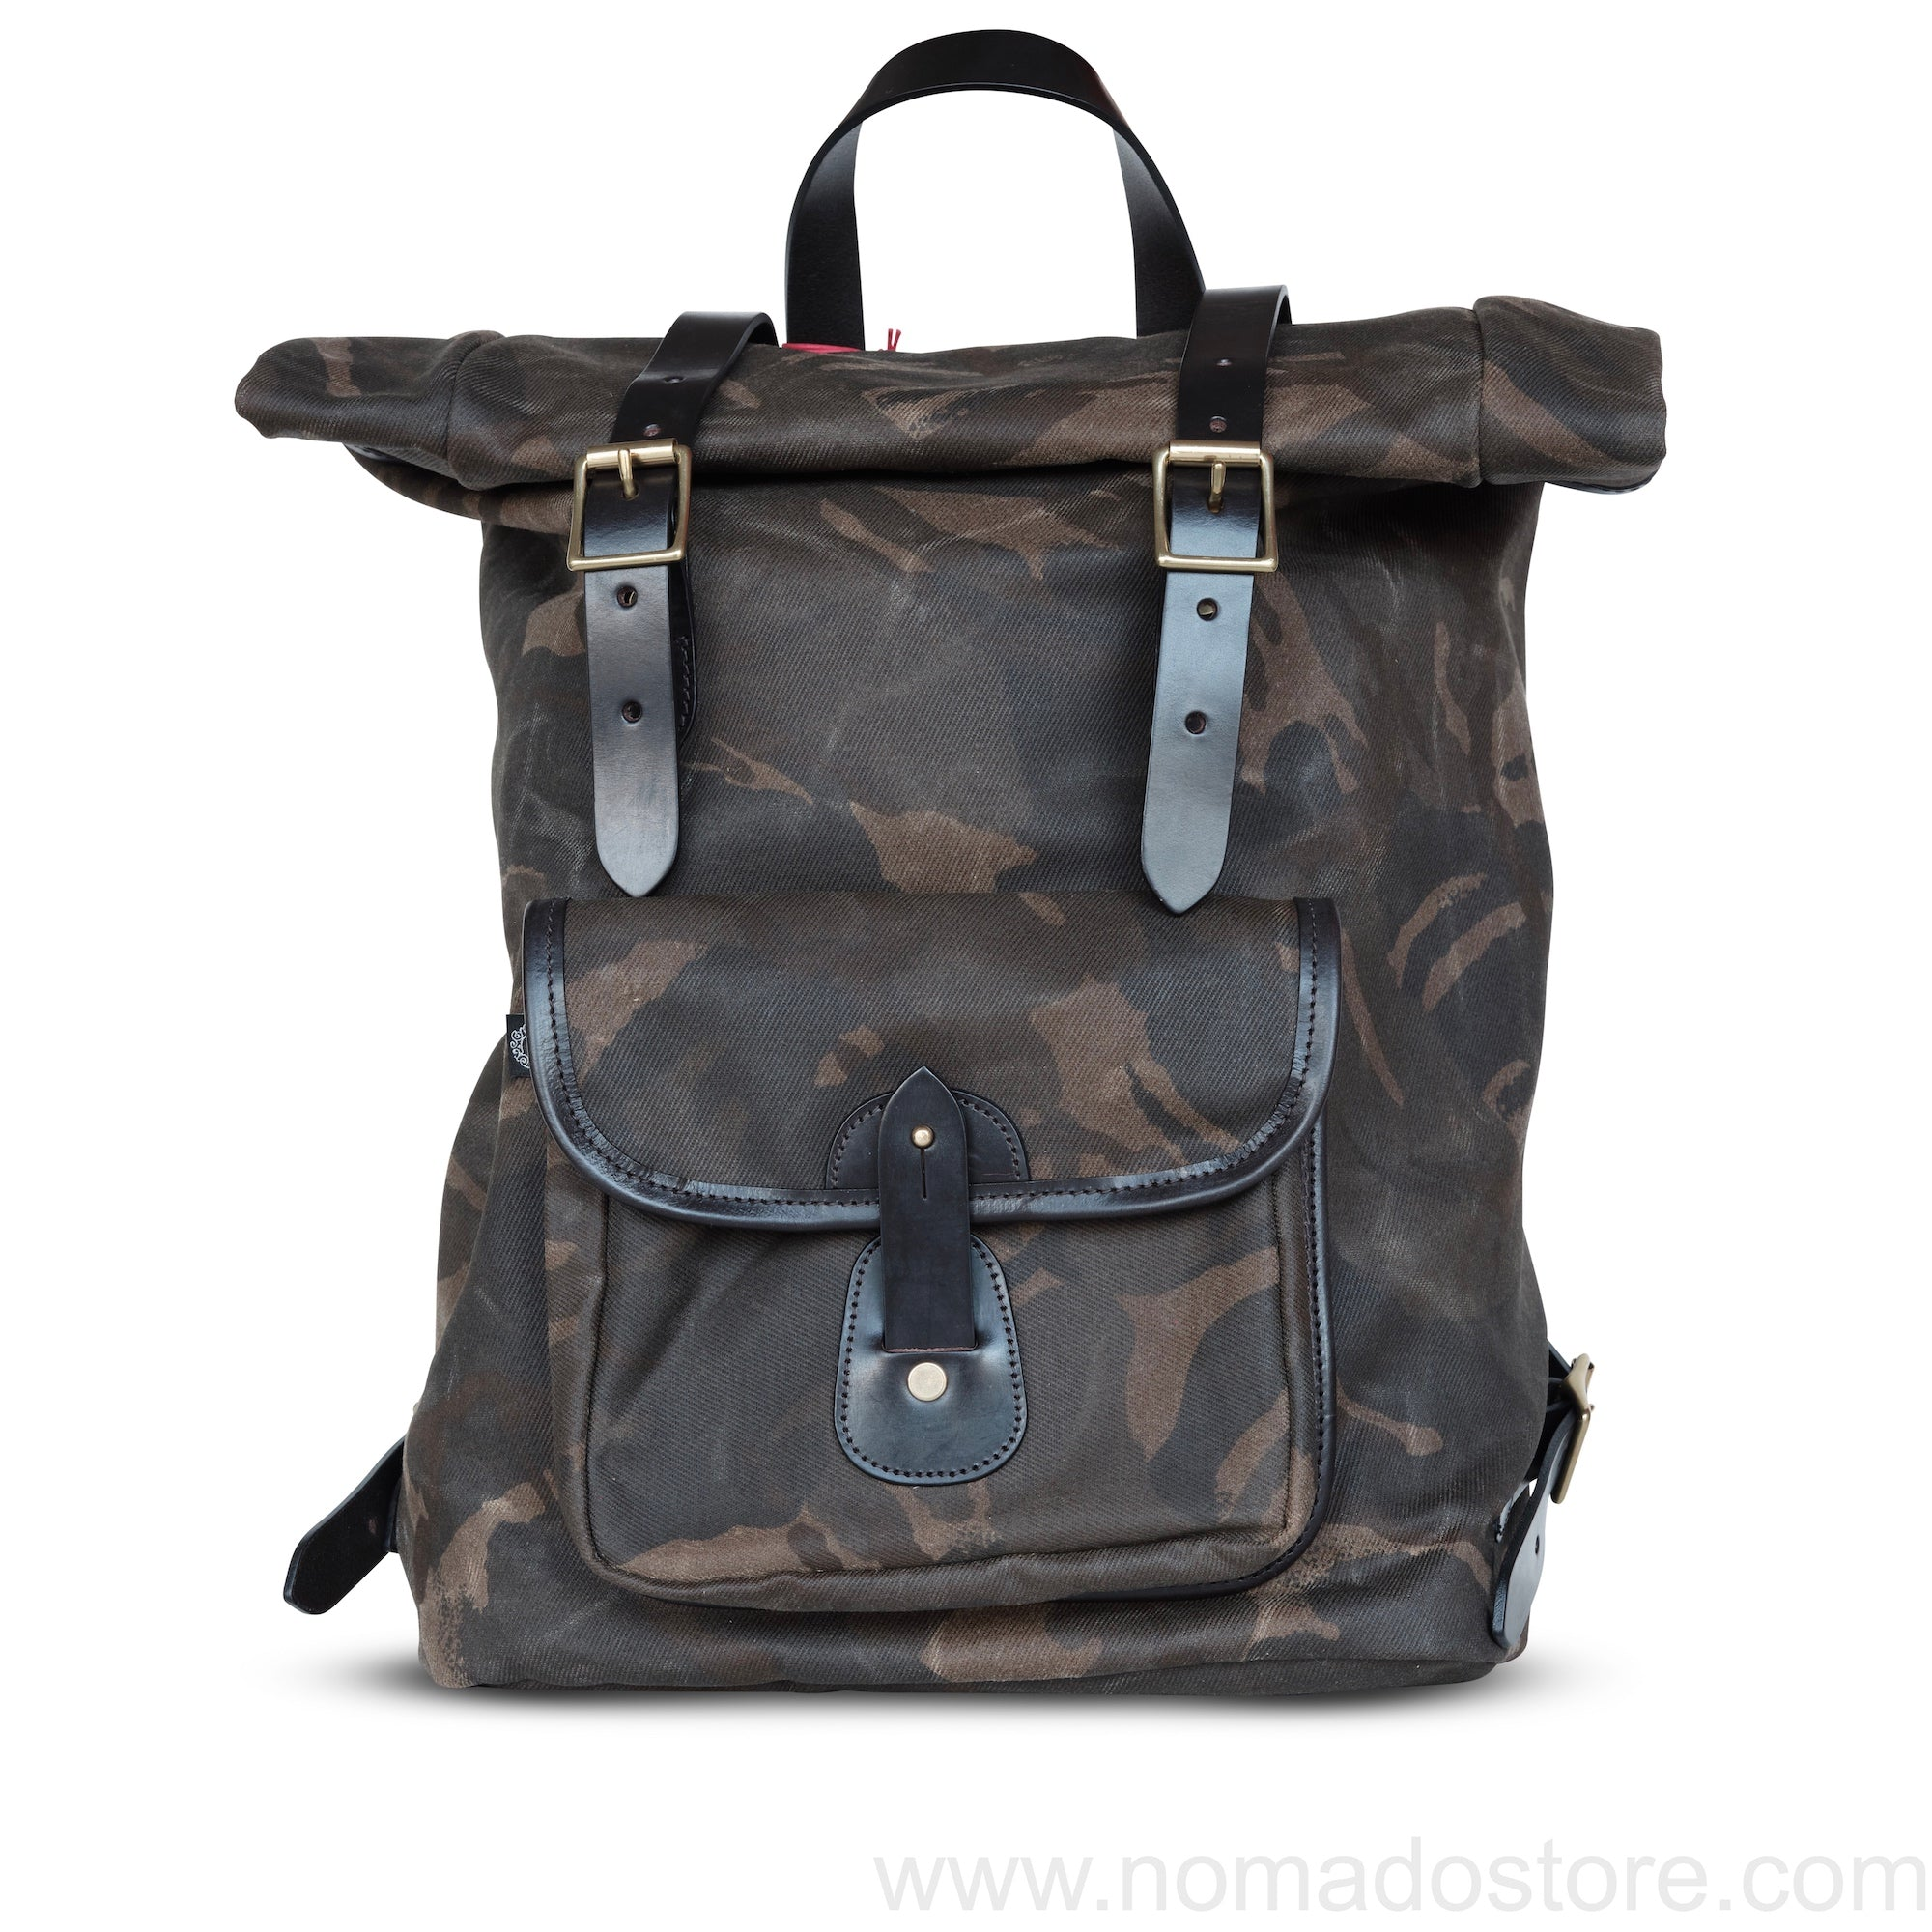 CROOTS WAXED CANVAS CAMOUFLAGE ROLL TOP BACKPACK - NOMADO Store